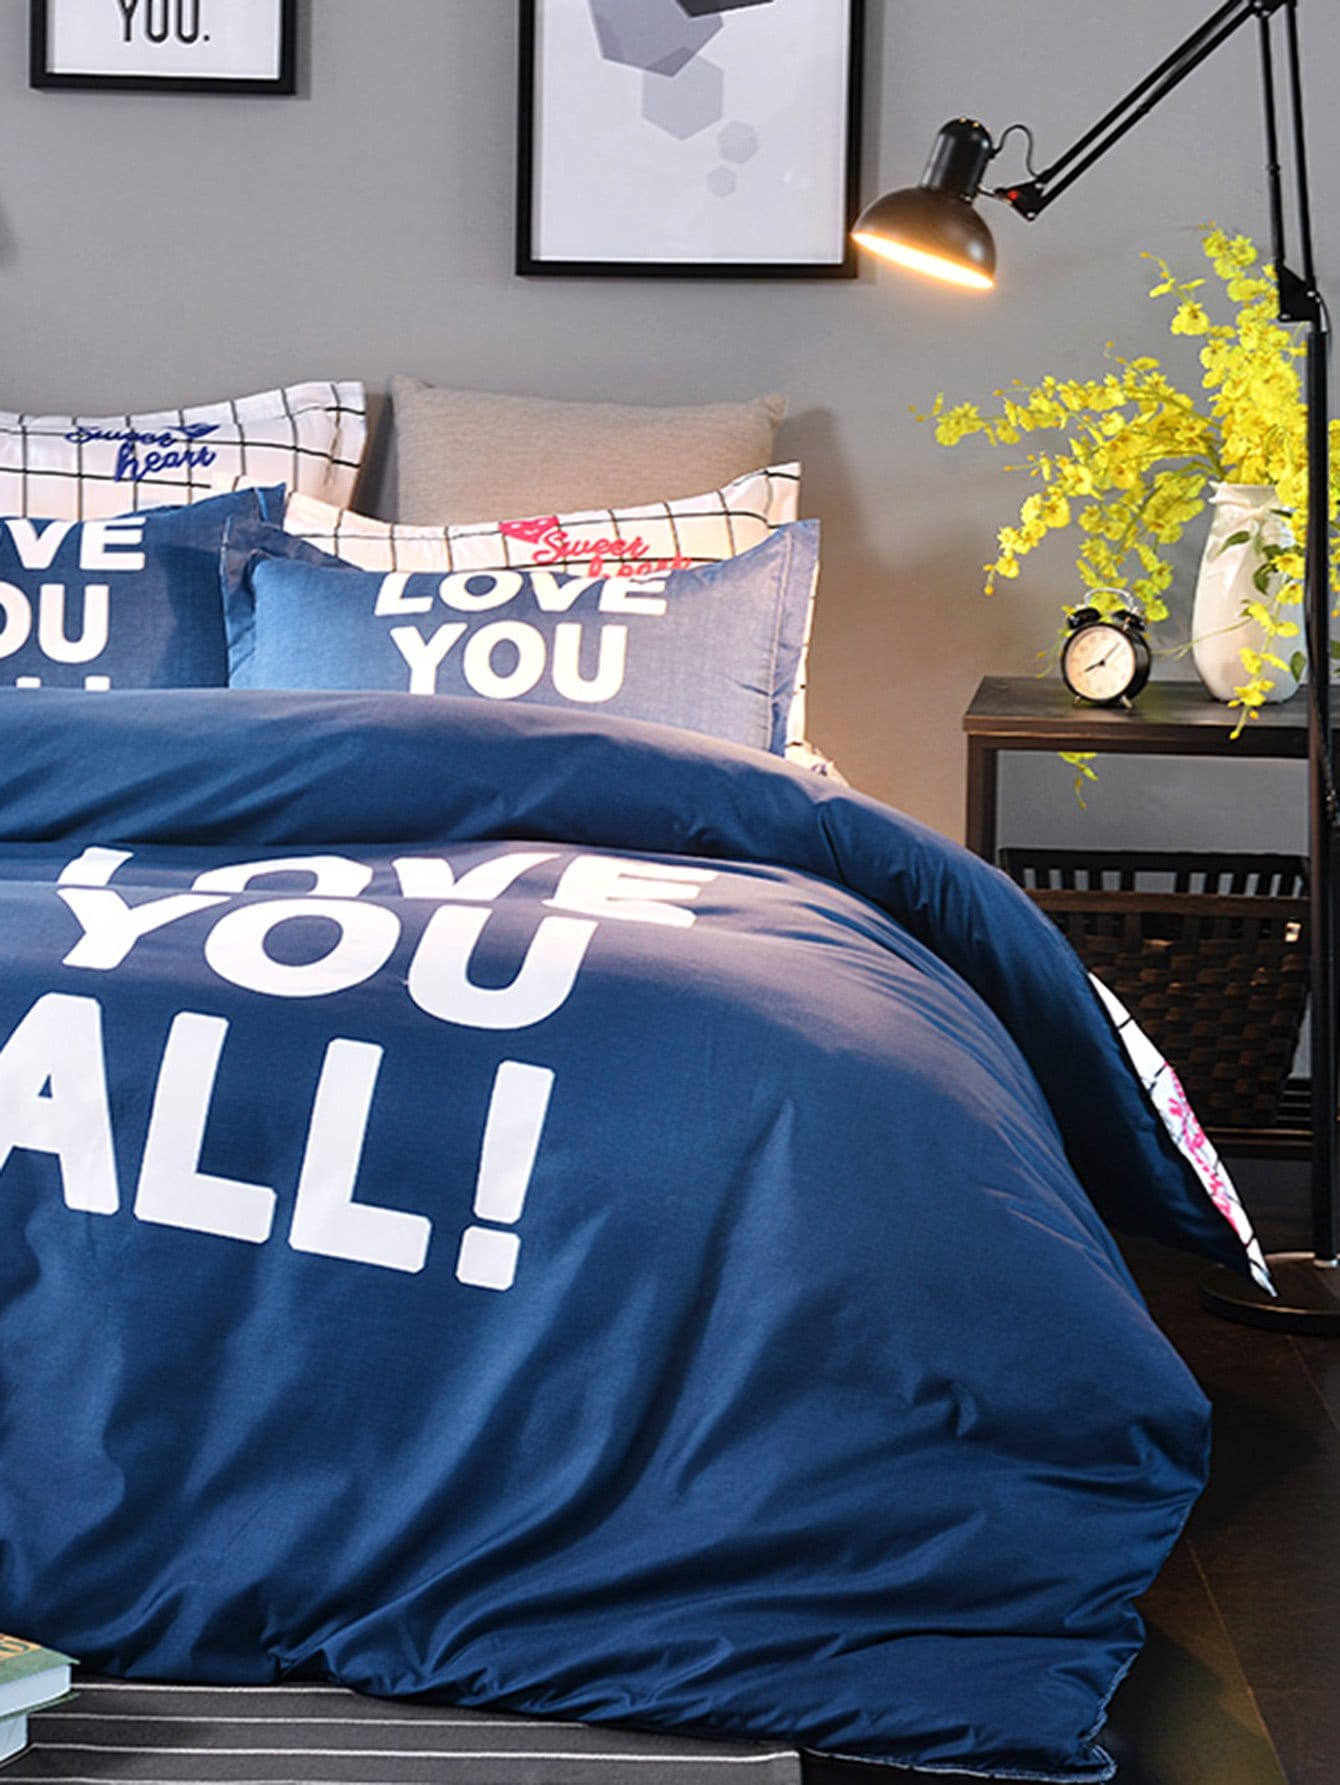 Slogan & Grid Print Duvet Cover Set grid duvet cover set